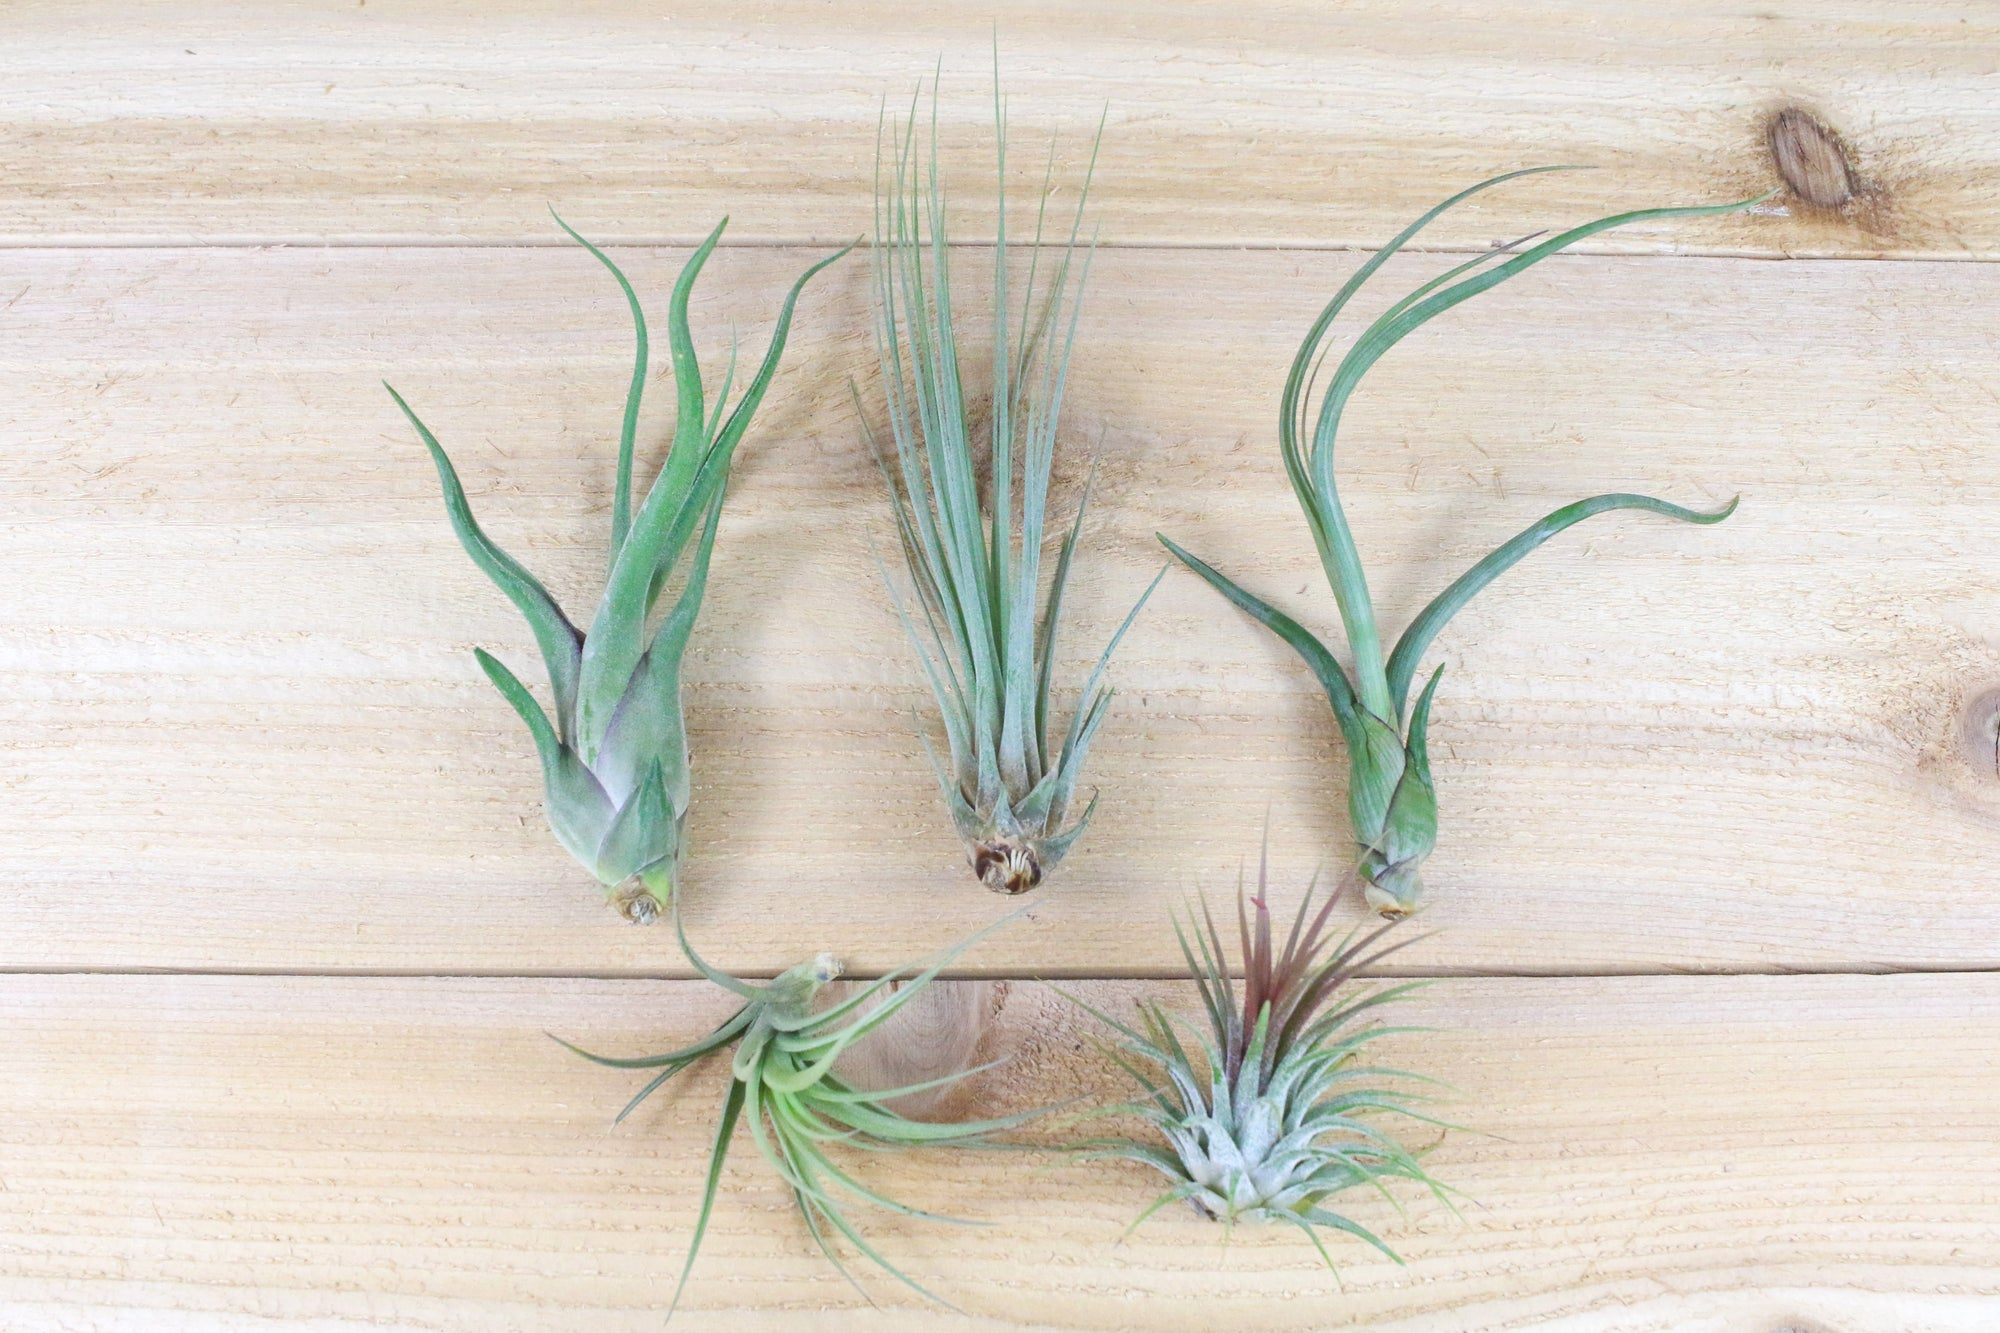 [5 Pack] Yucatan Collection of Tillandisa Air Plants